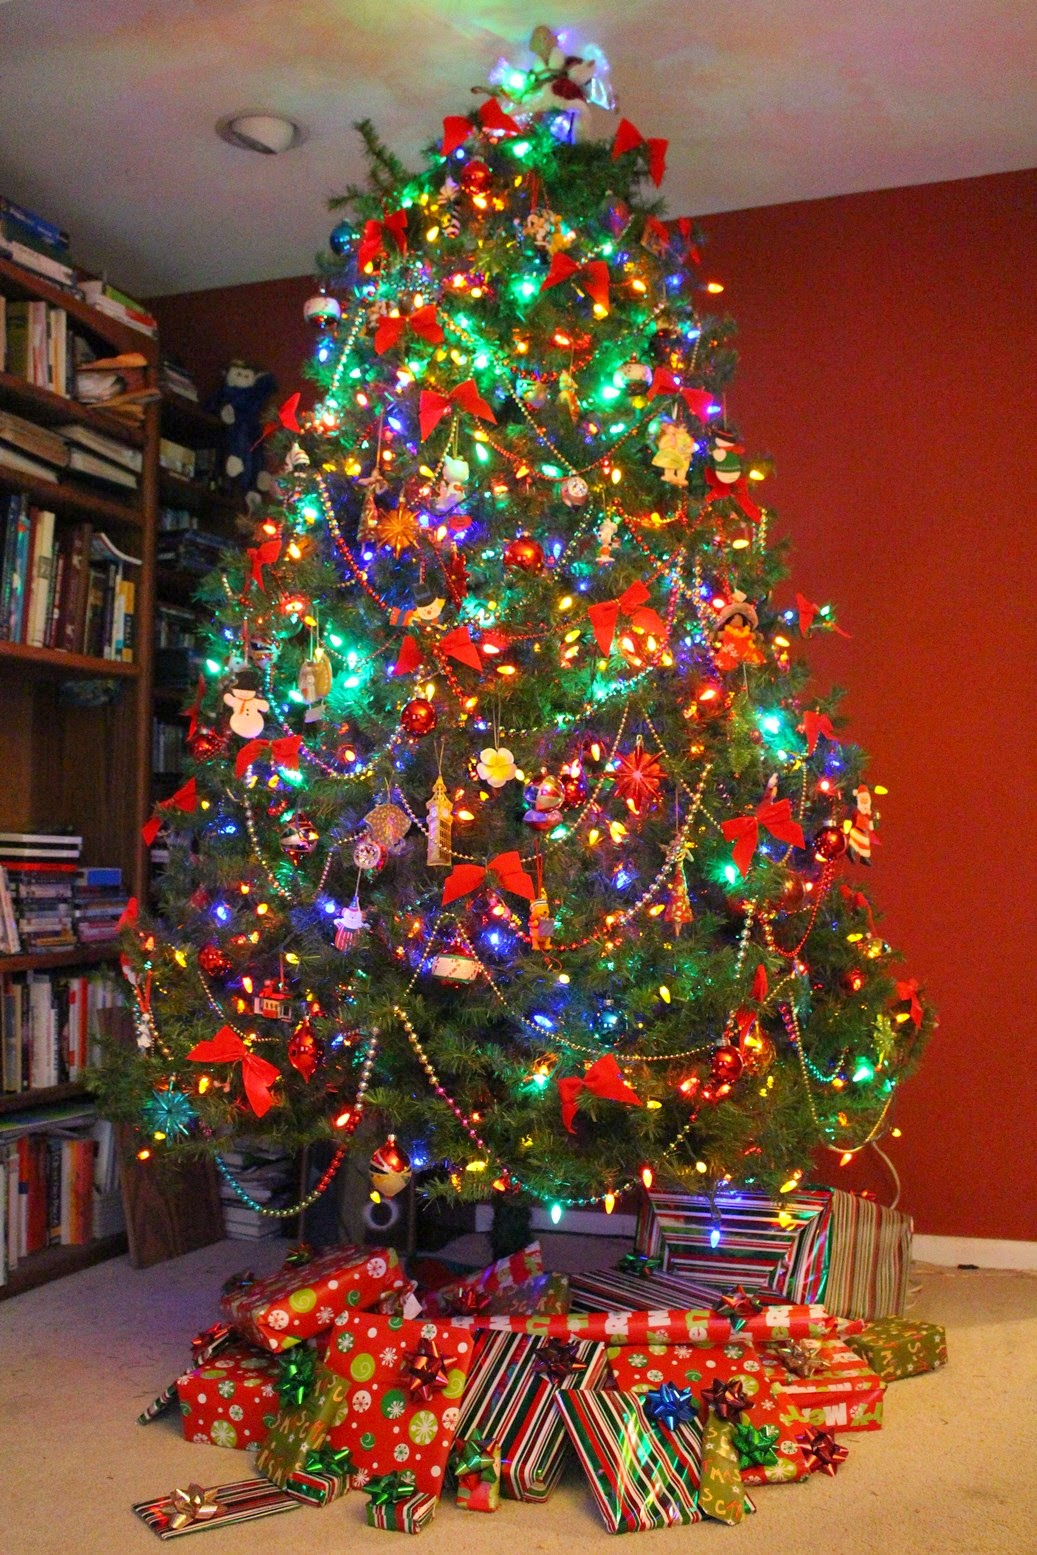 Christmas tree decorated in multi-color lights